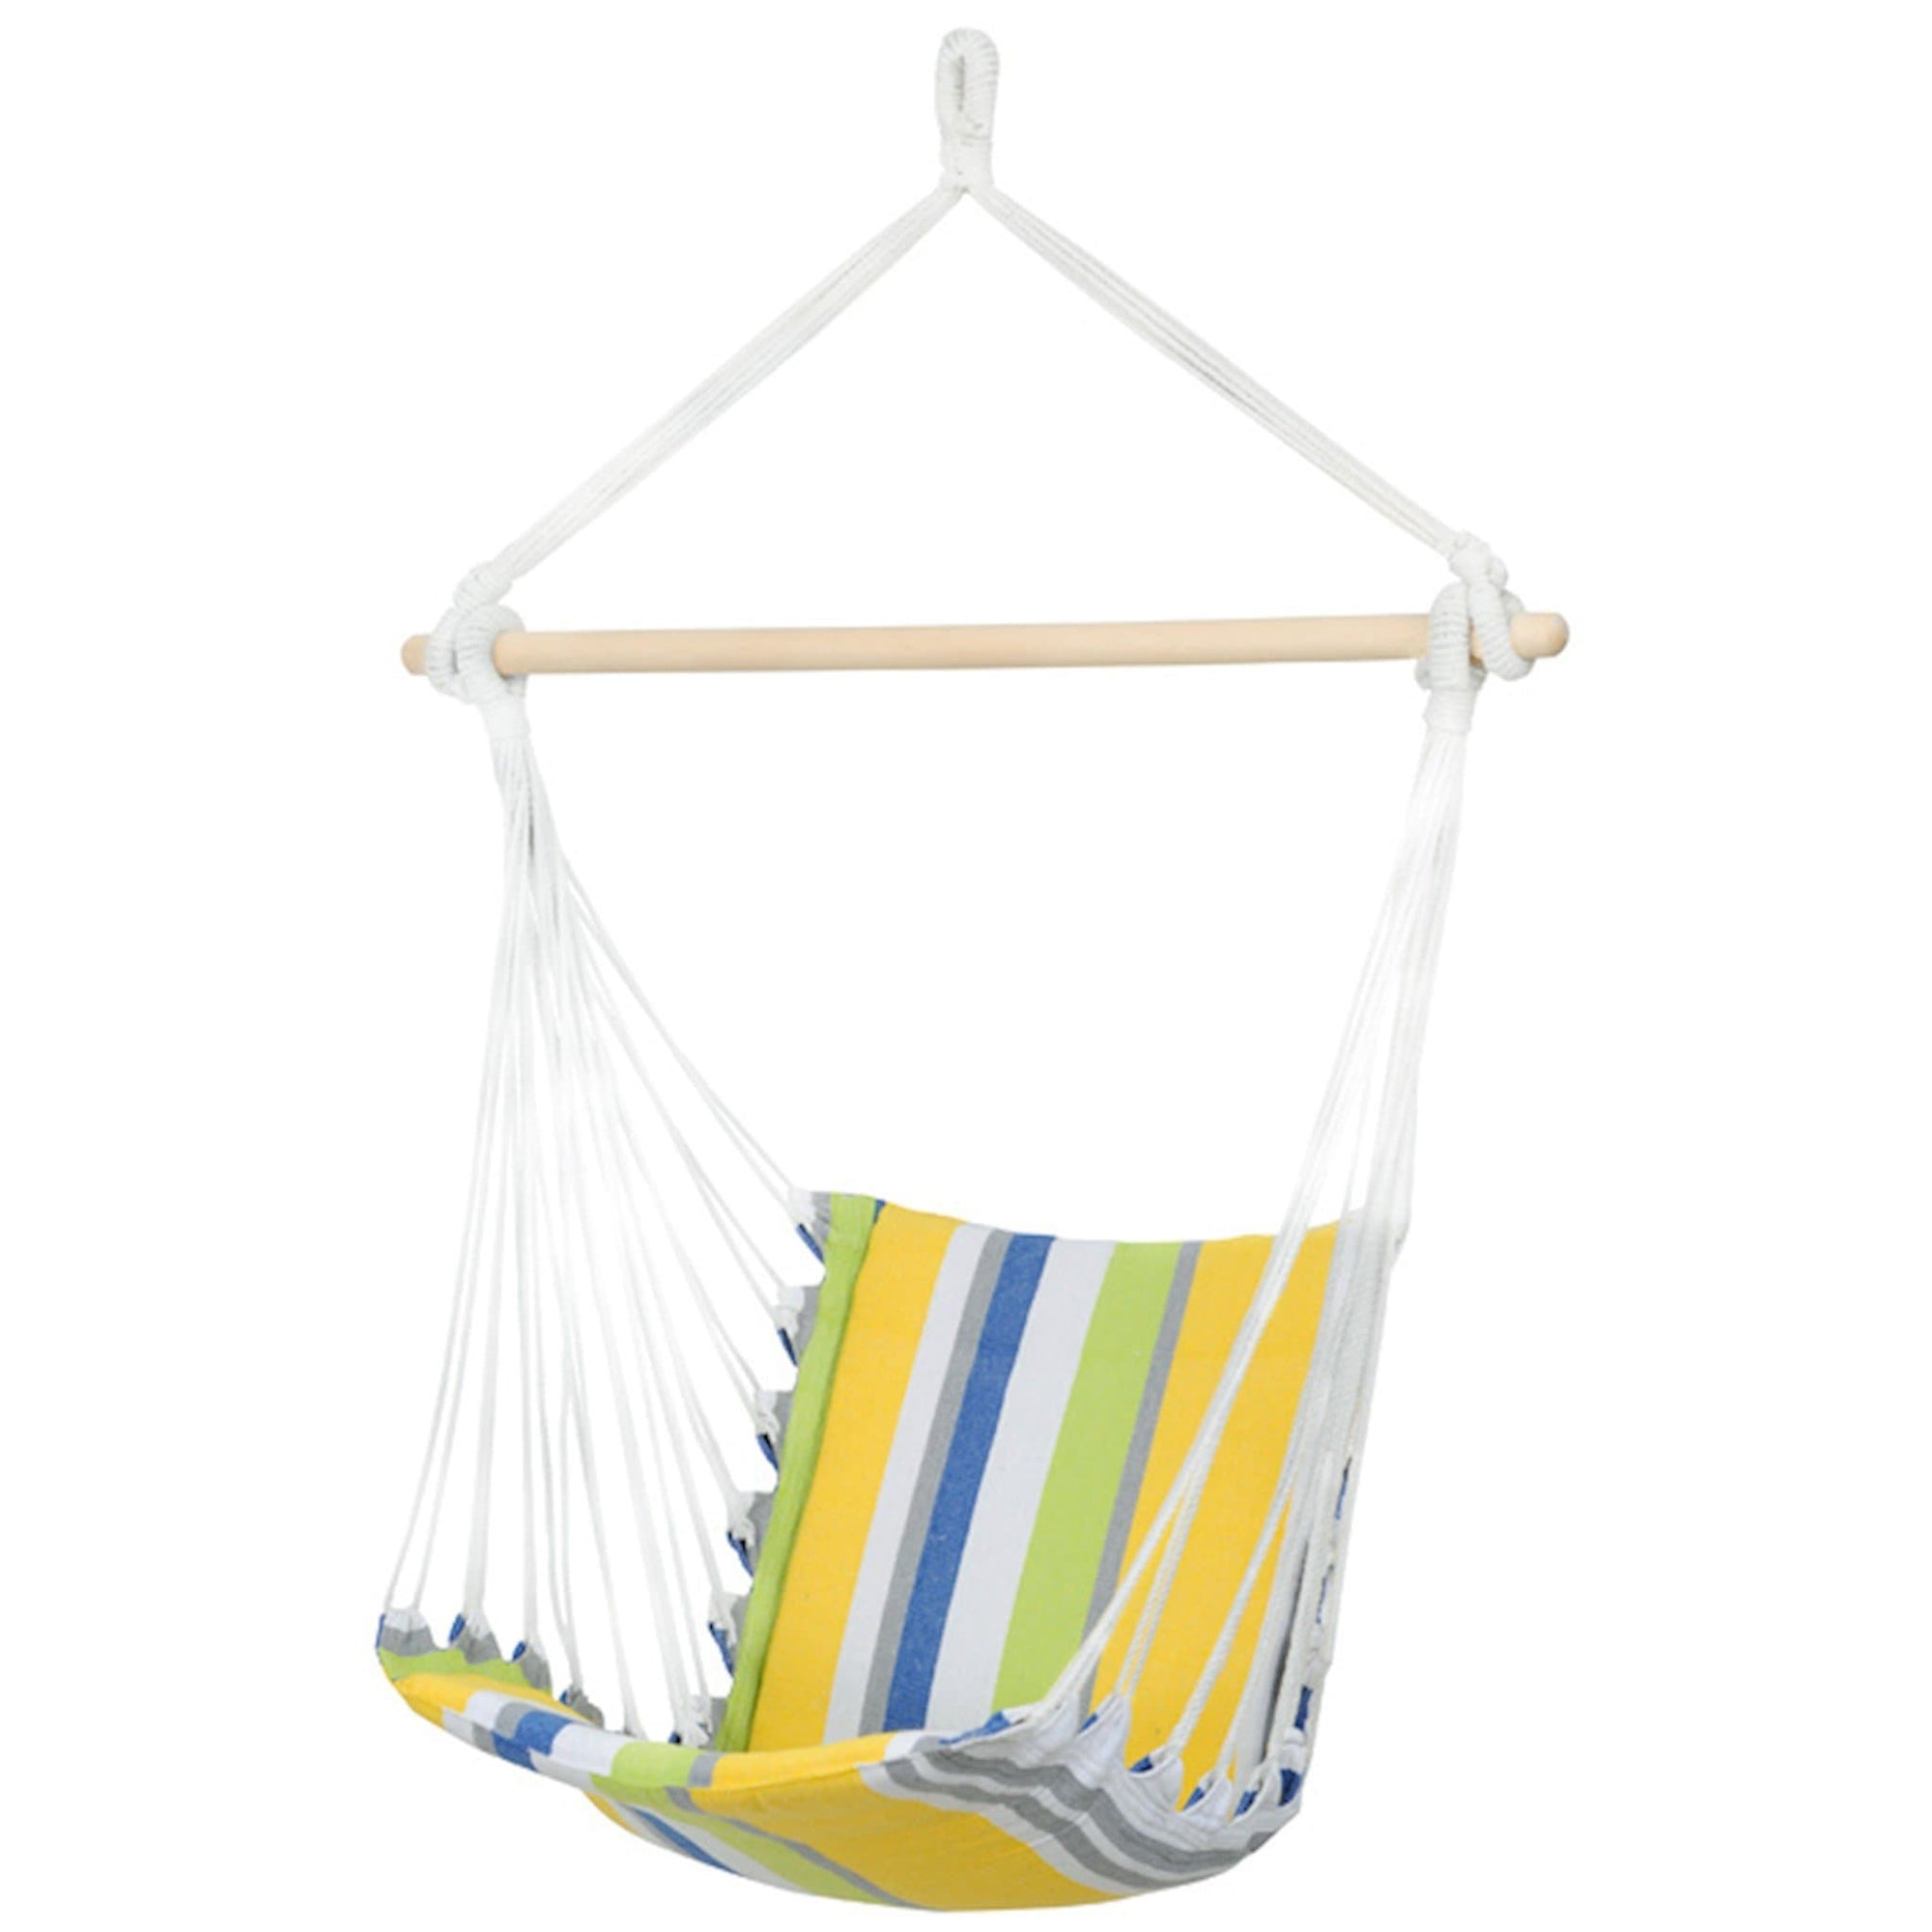 Padded hammock chair with wooden spreader bar